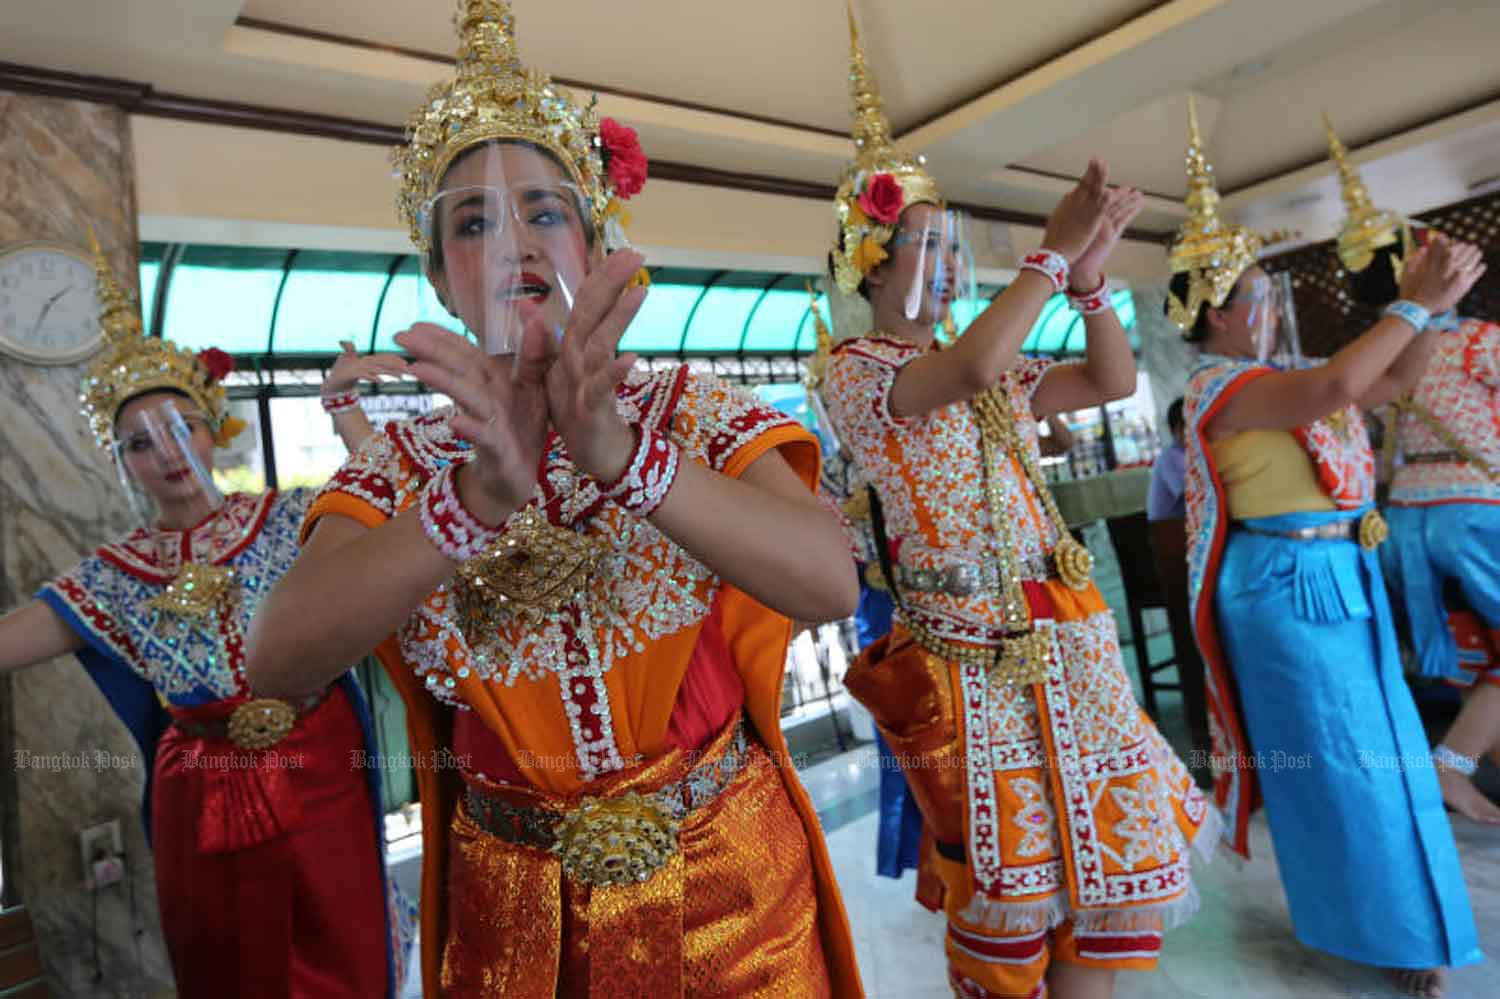 Traditional performers wearing face shields perform a dance at the Erawan Shrine at Ratchaprasong intersection in central Bangkok. The shrine, particularly popular with Chinese tourists, reopened on Friday after it was closed on March 27 at the height of the Covid-19 pandemic. Wichan Charoenkiatpakul